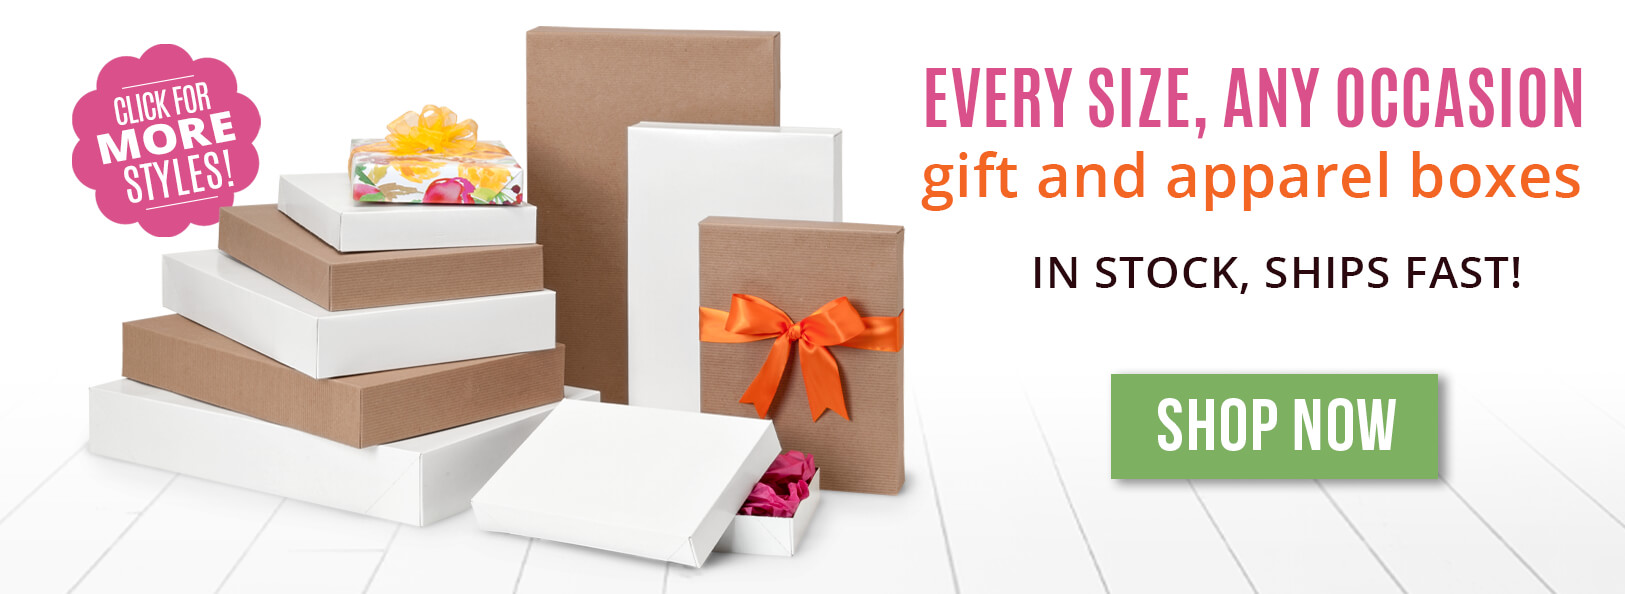 Apparel & Gift Boxes from Nashville Wraps